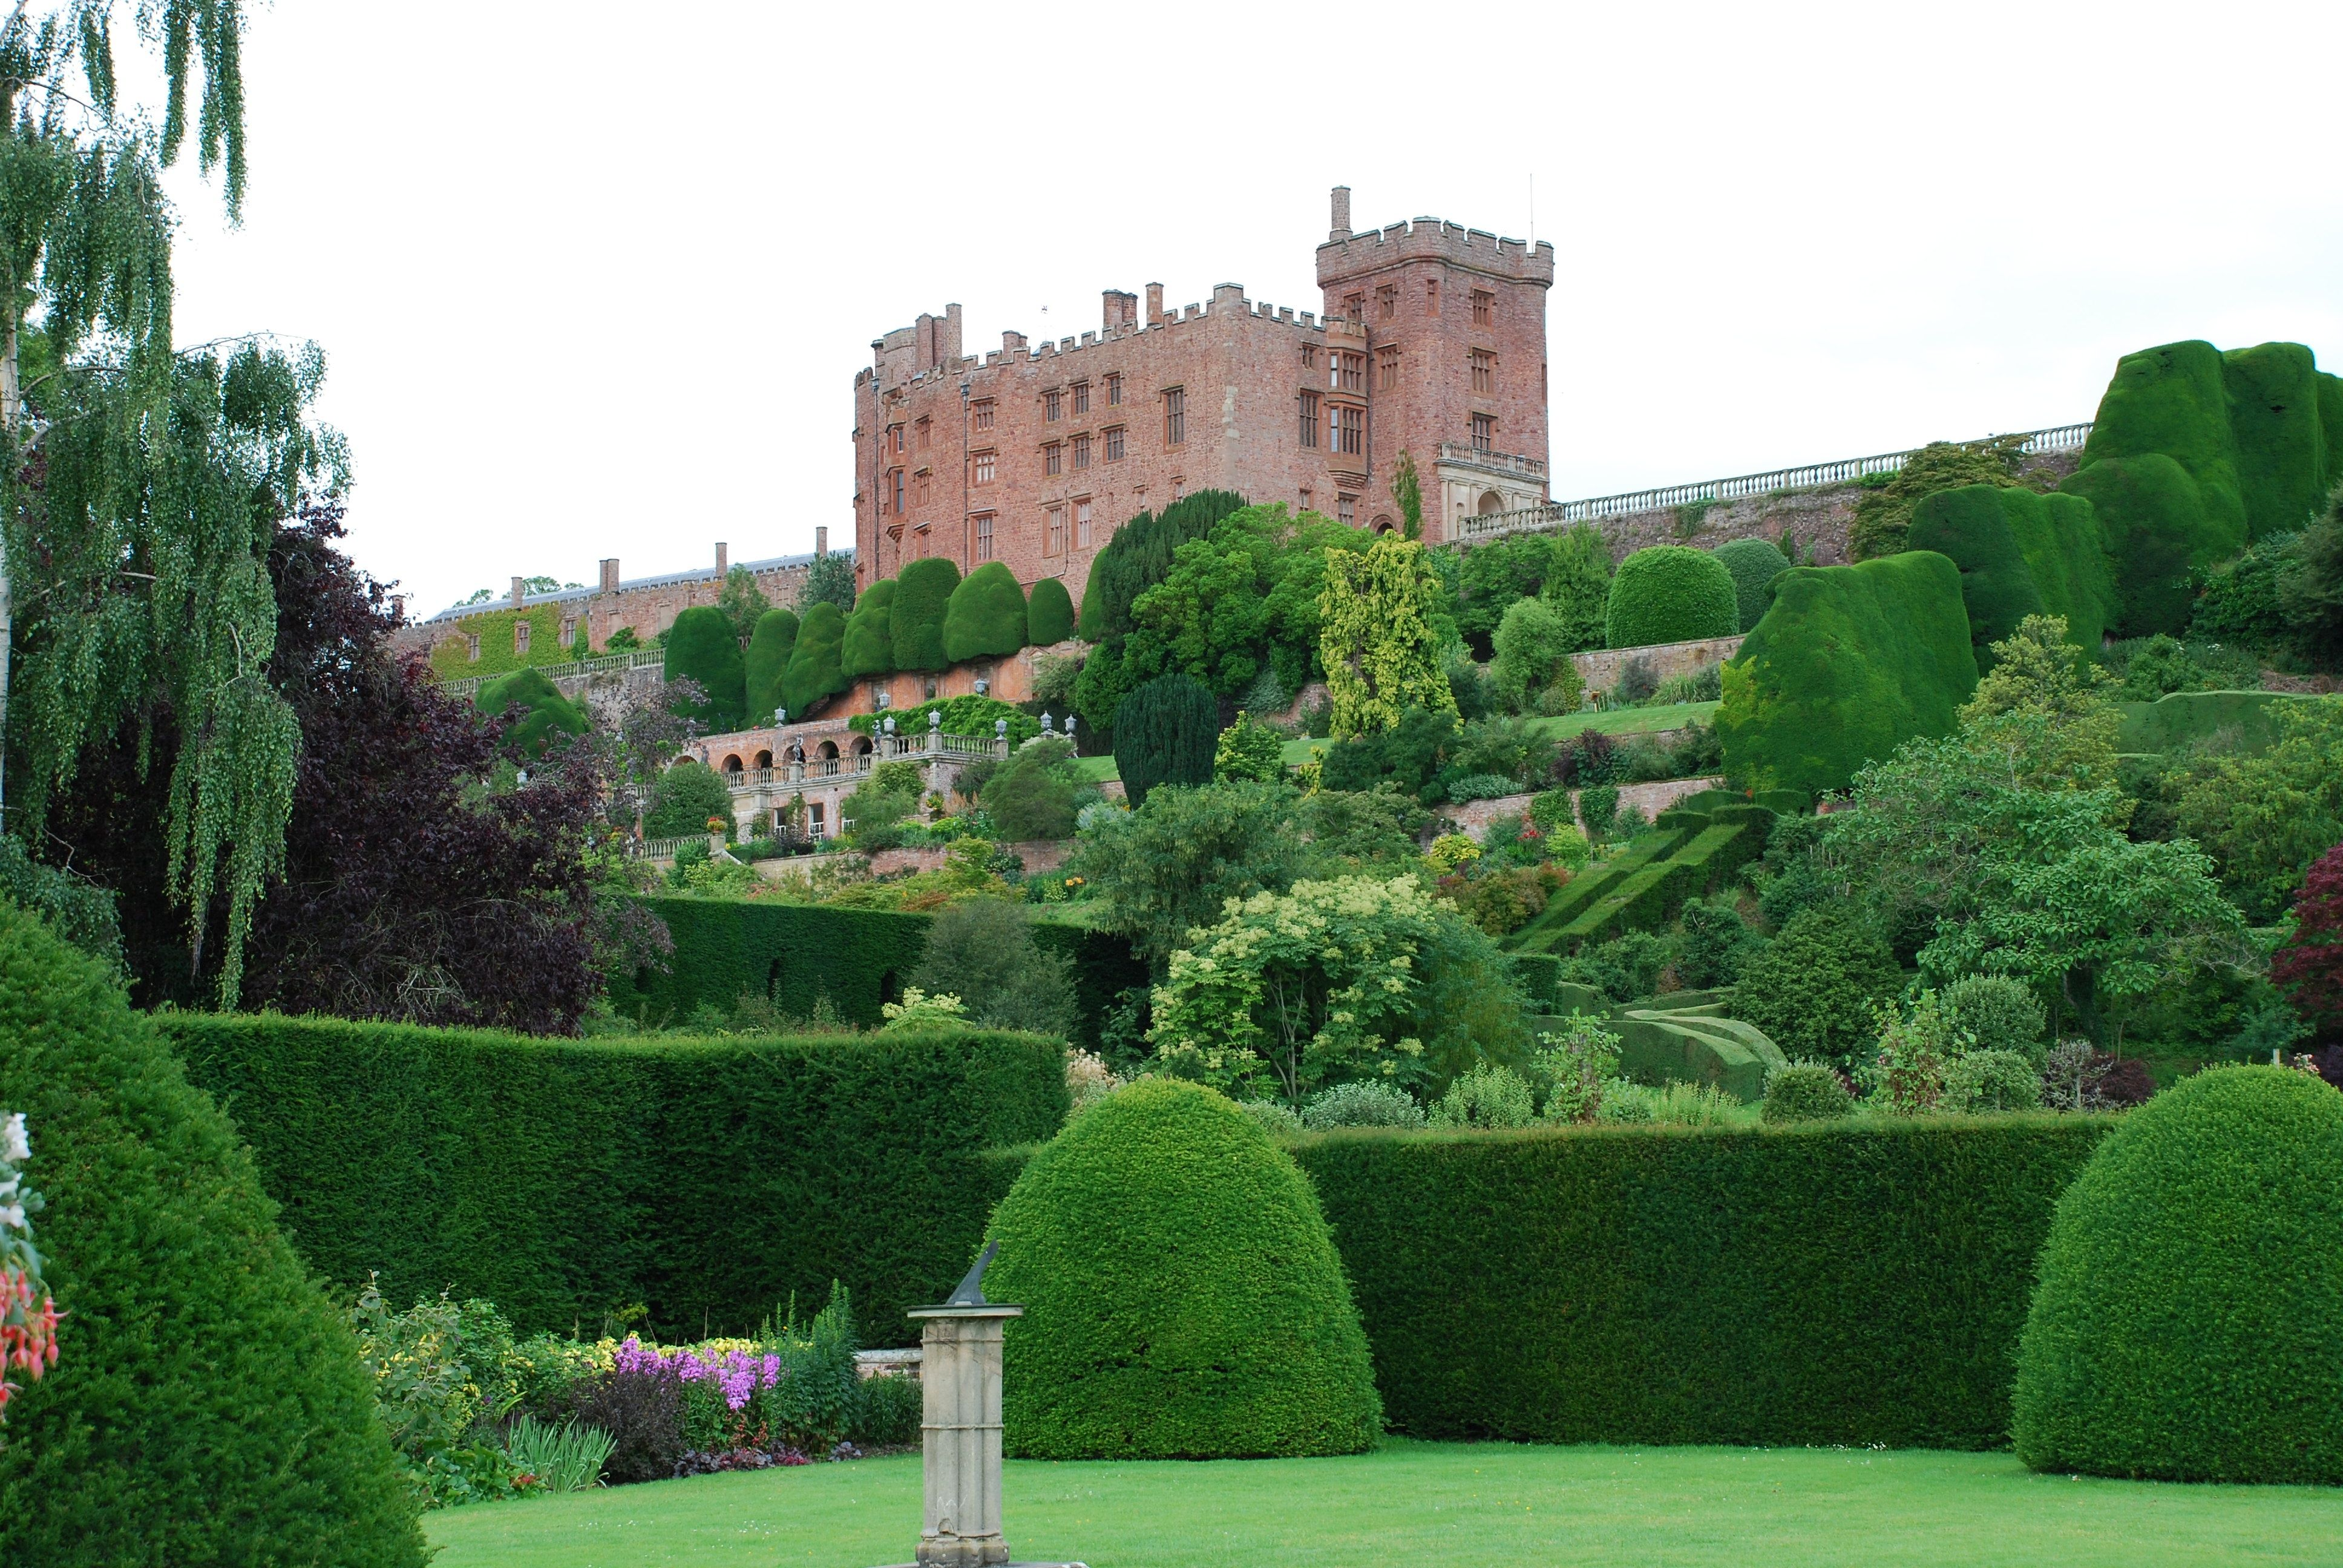 The terraced gardens at Powis castle